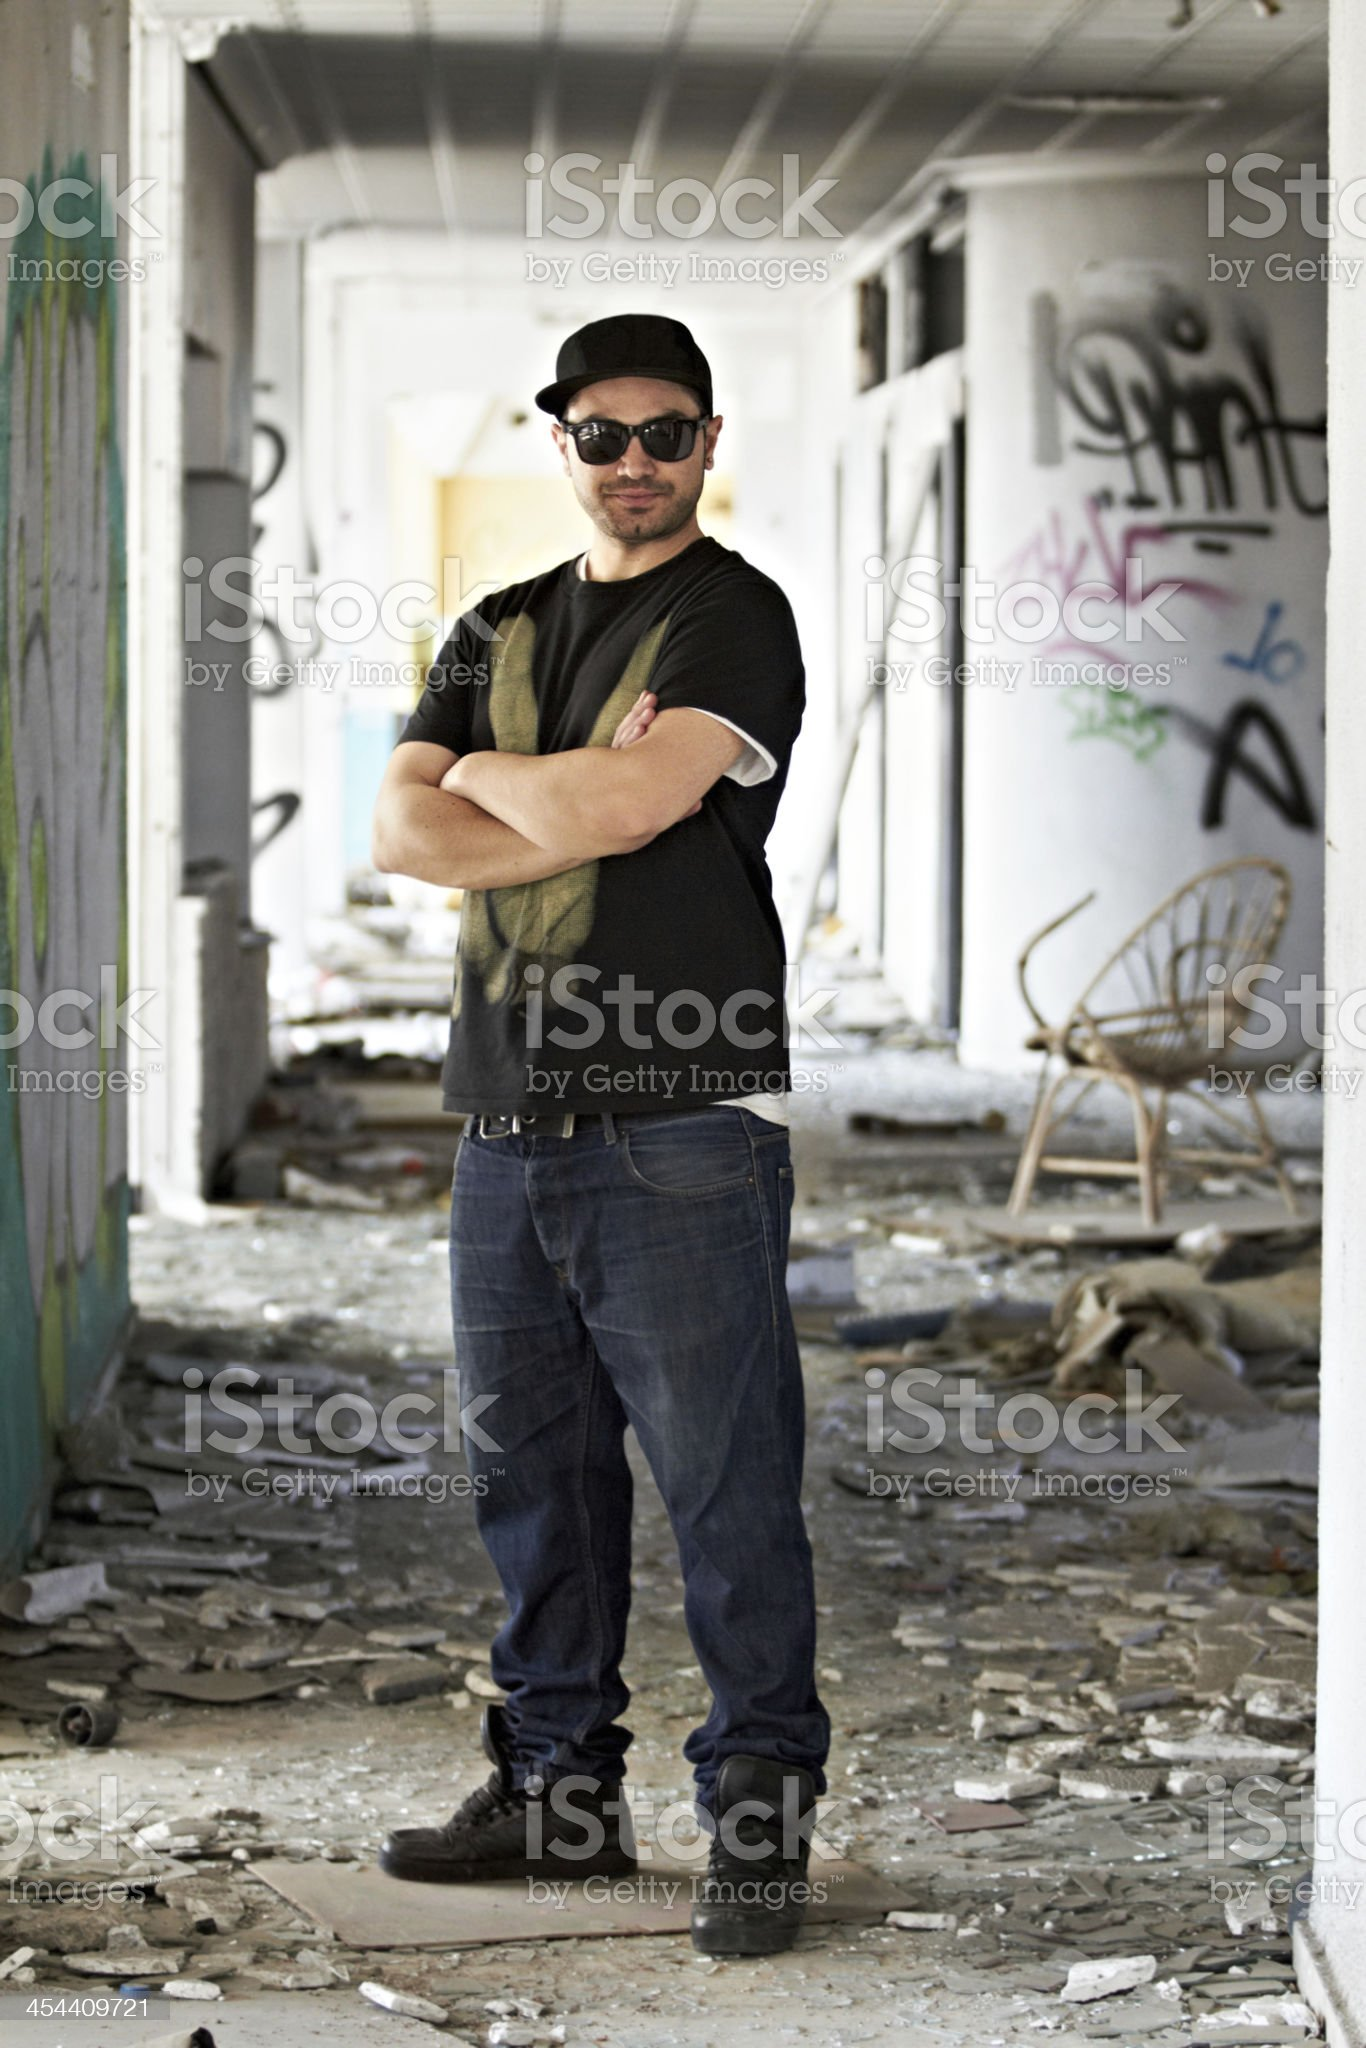 Graffiti is our art royalty-free stock photo